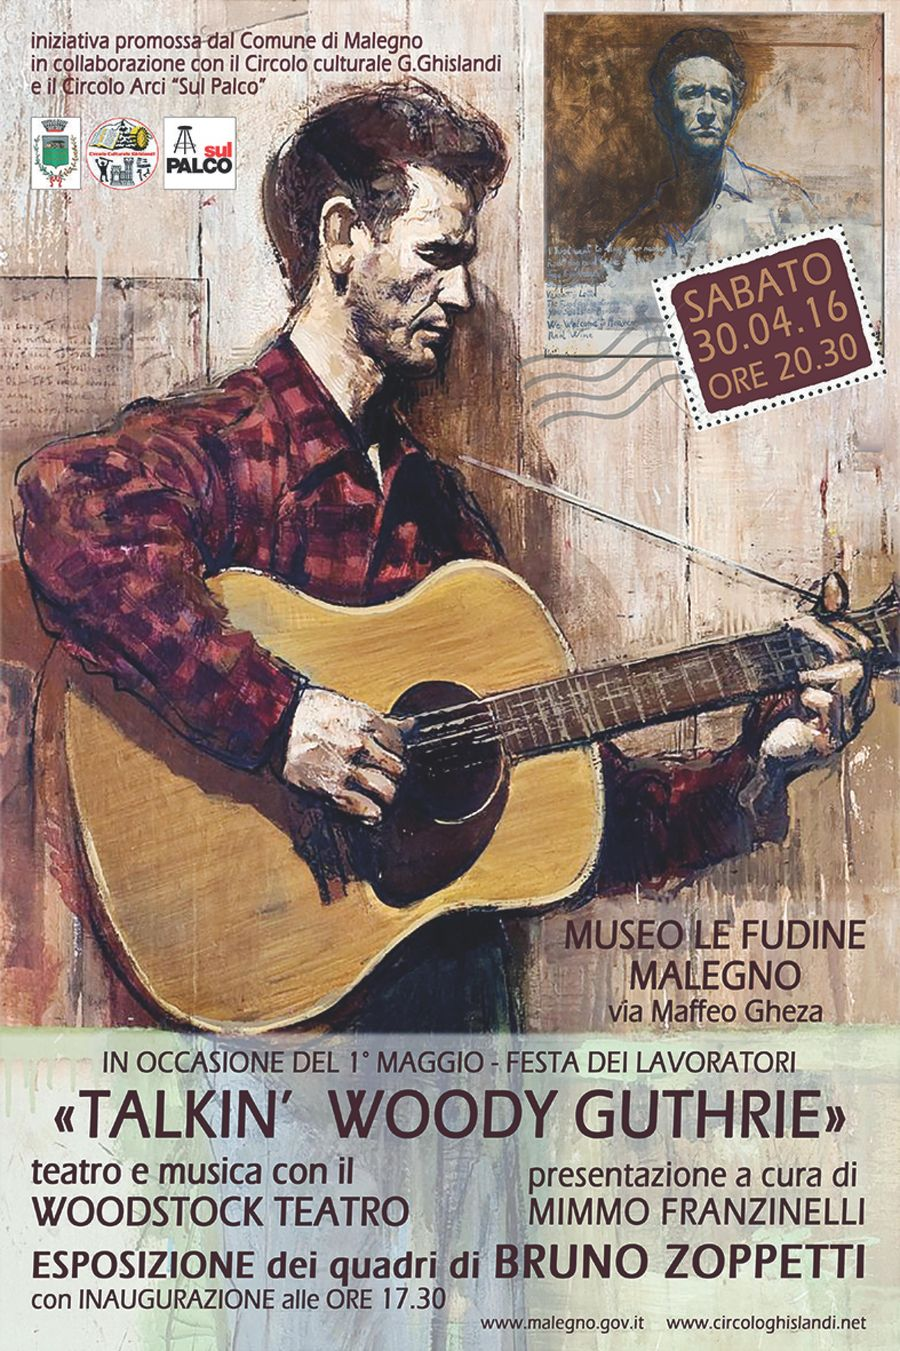 Bruno-Zoppetti-Woody-Guthrie-2016-04-30